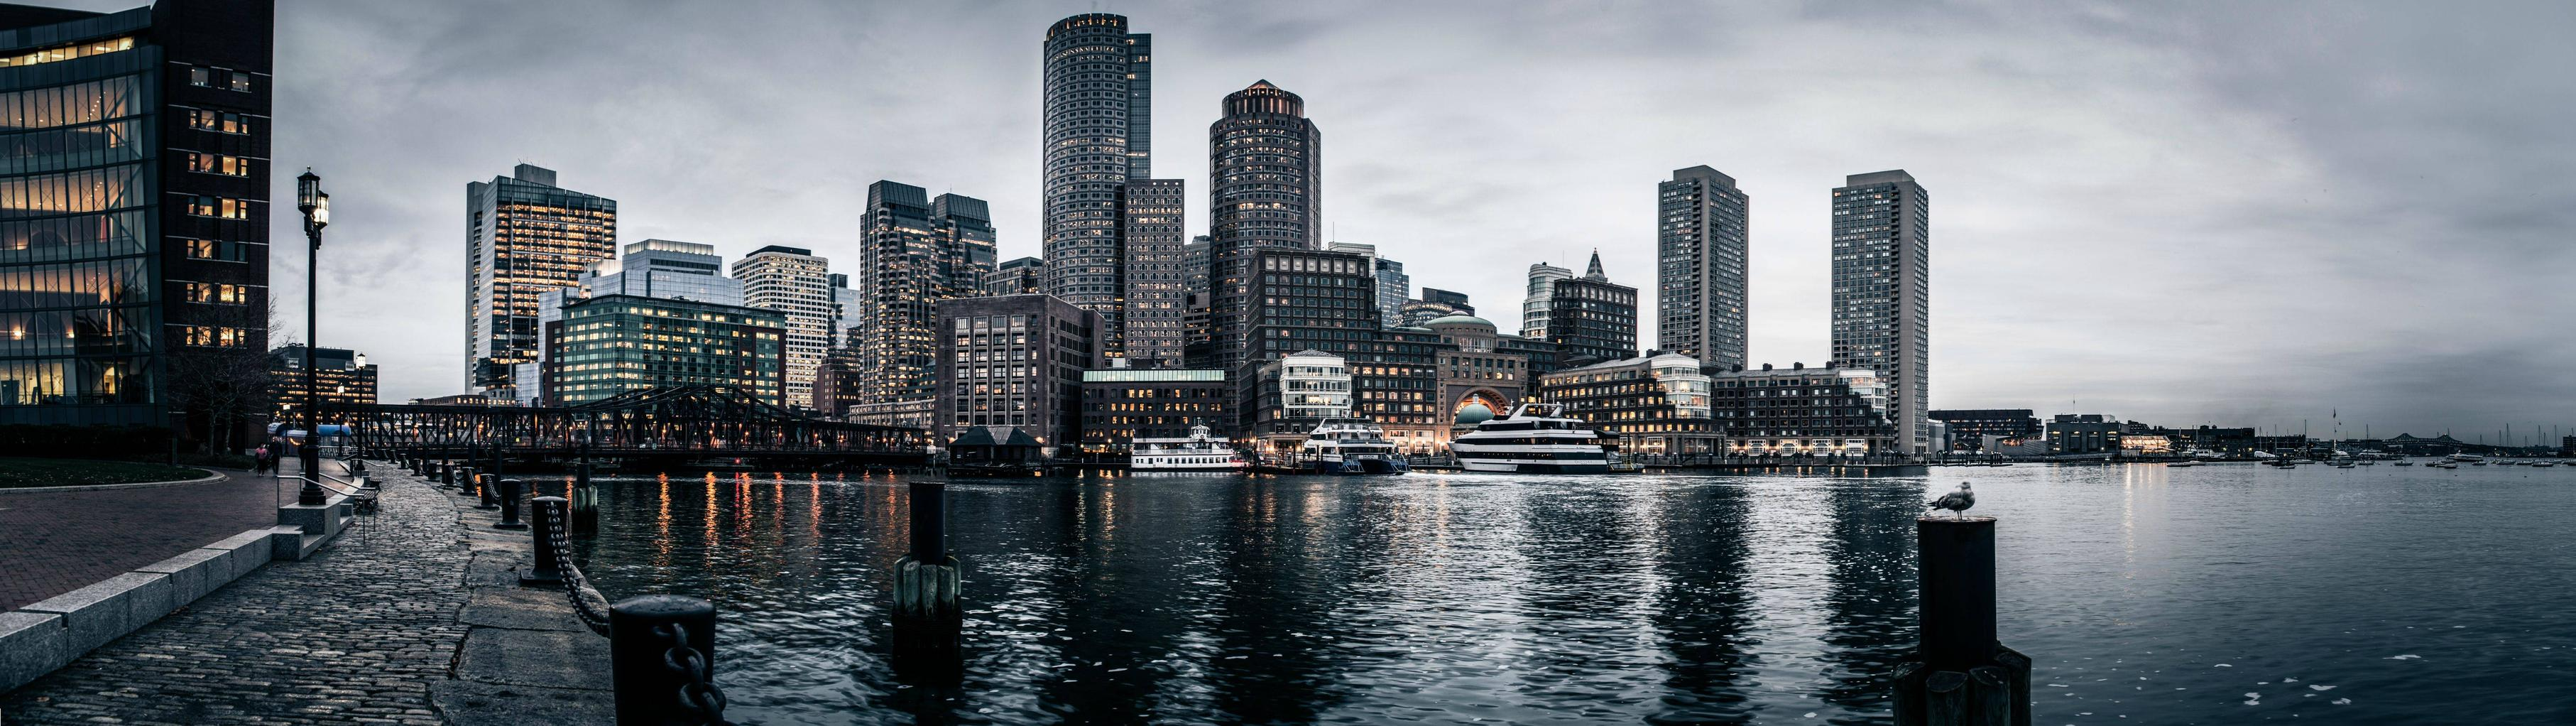 city wallpaper and background image | 3628x1022 | id:336285